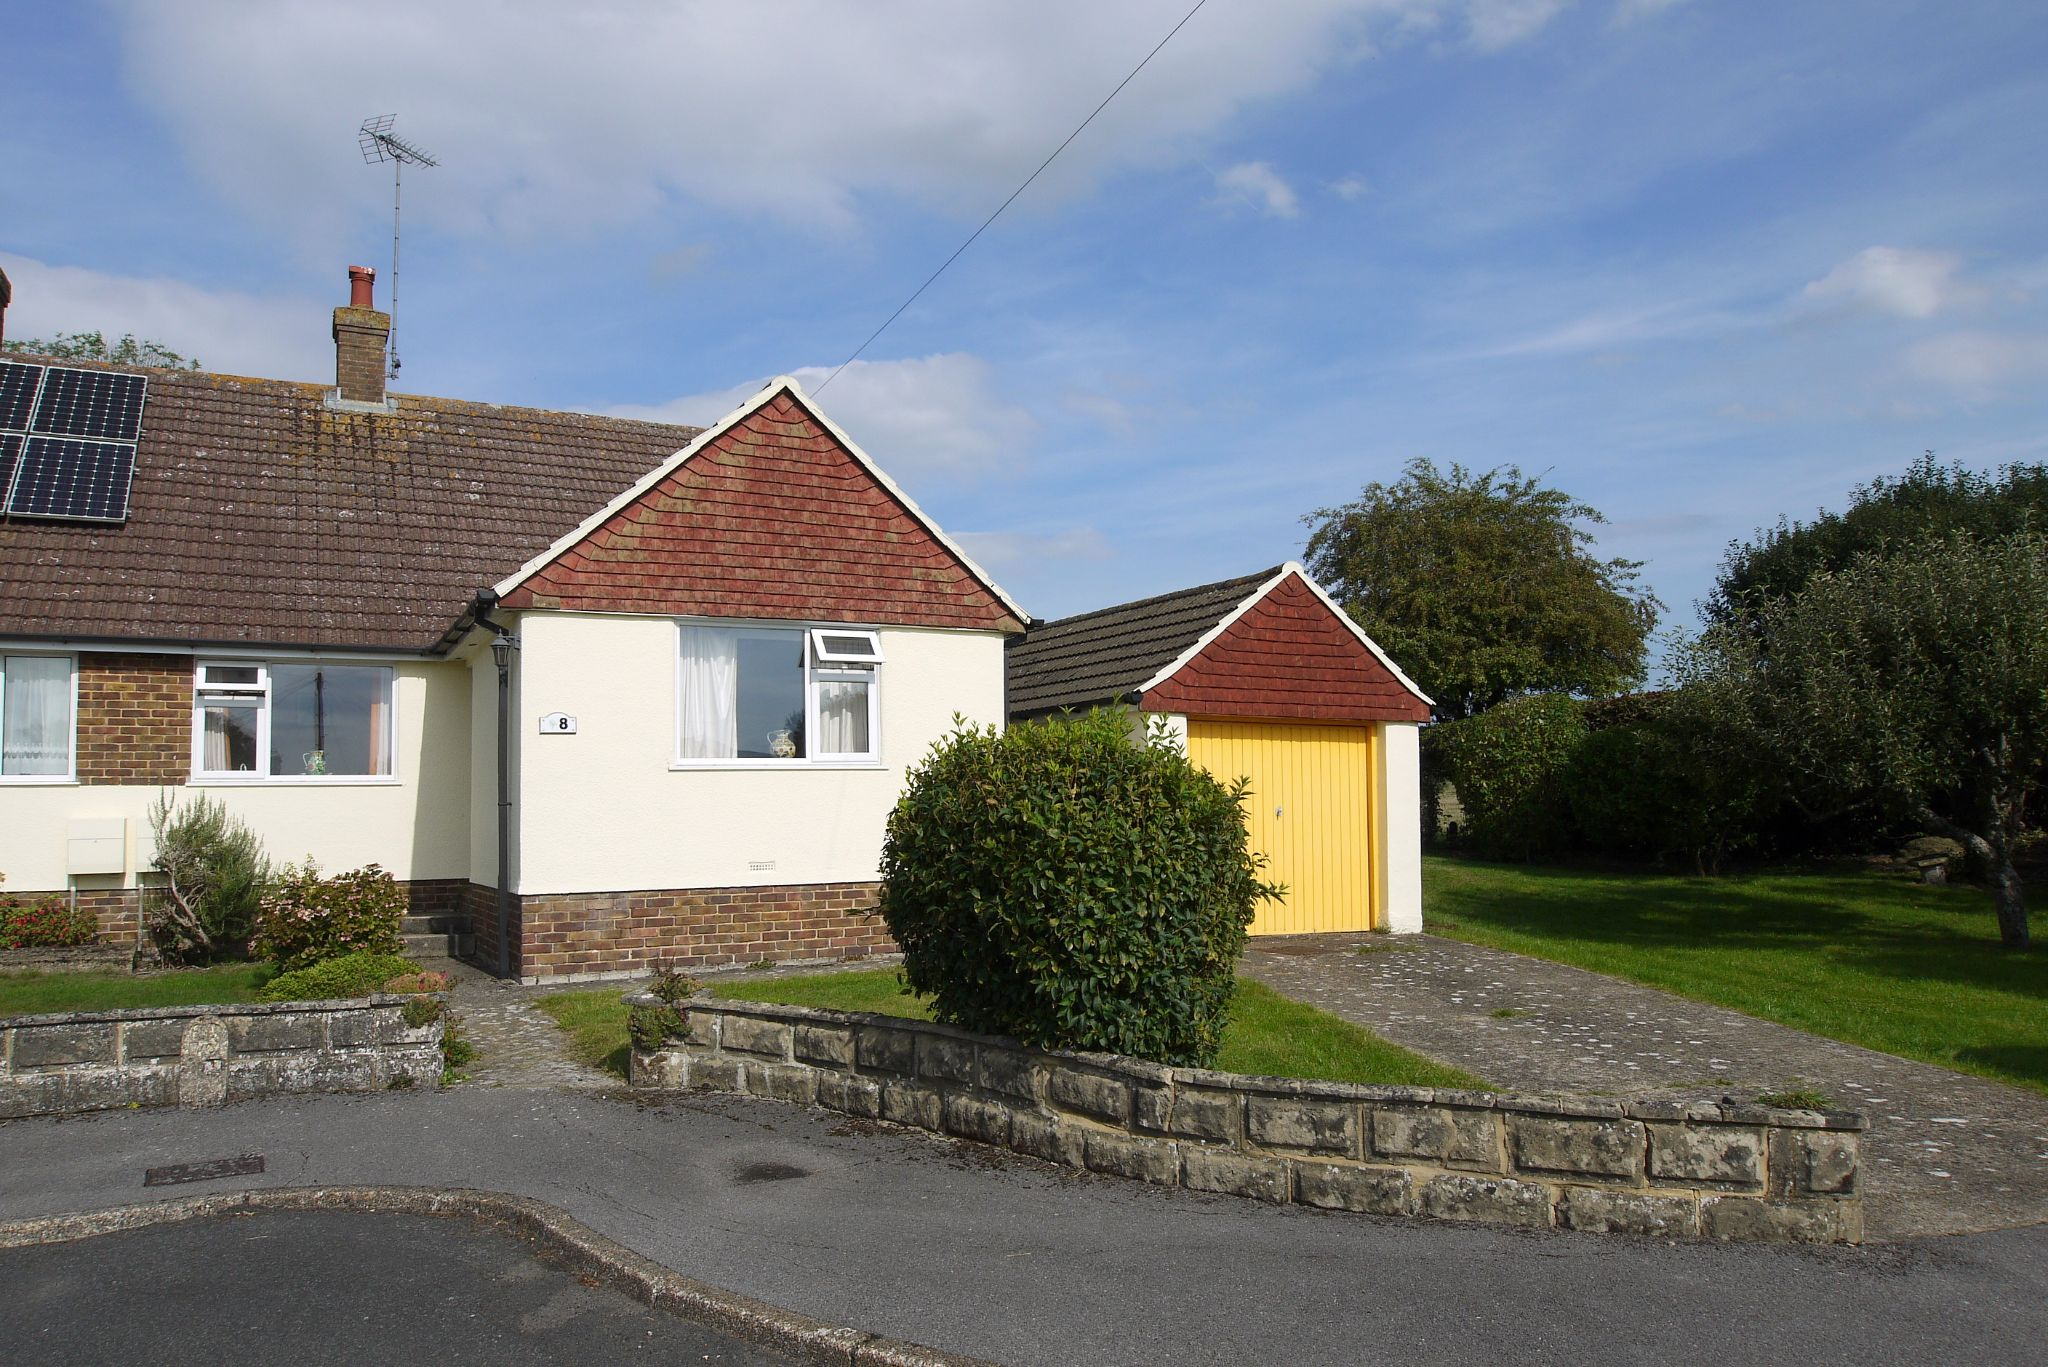 3 bedroom semi-detached bungalow Sold in Sevenoaks - Photograph 1